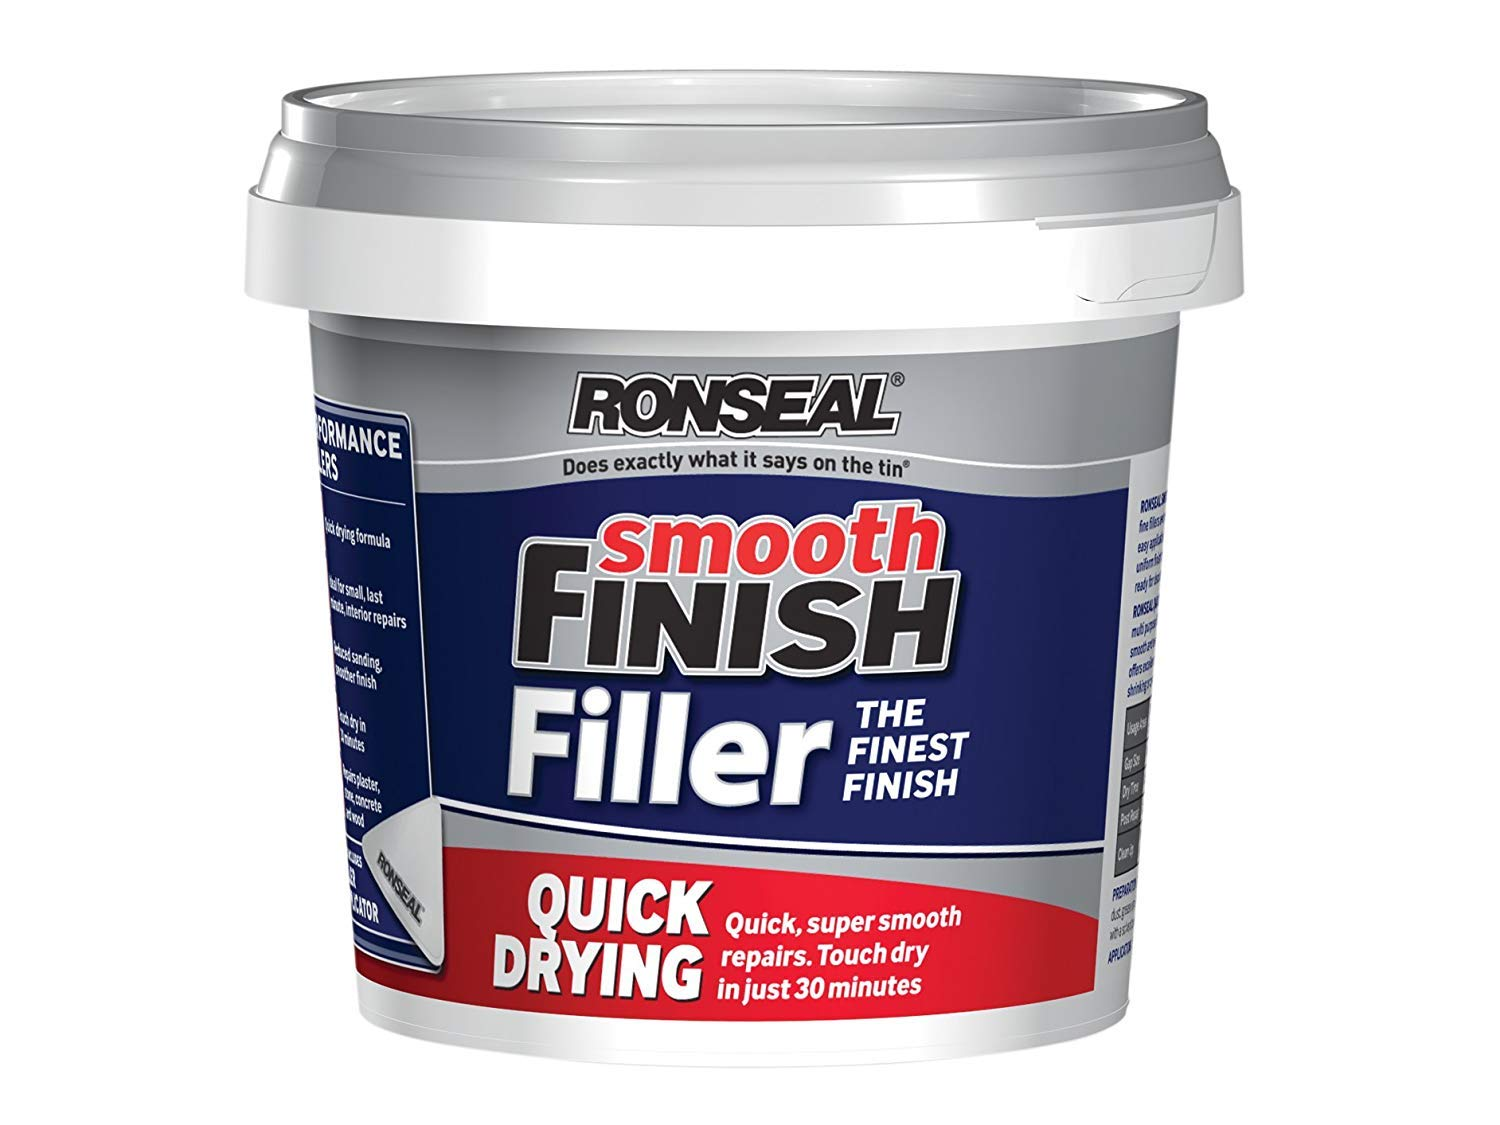 Ronseal 36553 Quick Drying Smooth Finish Ready Mix Wall Filler, White, 600 gm